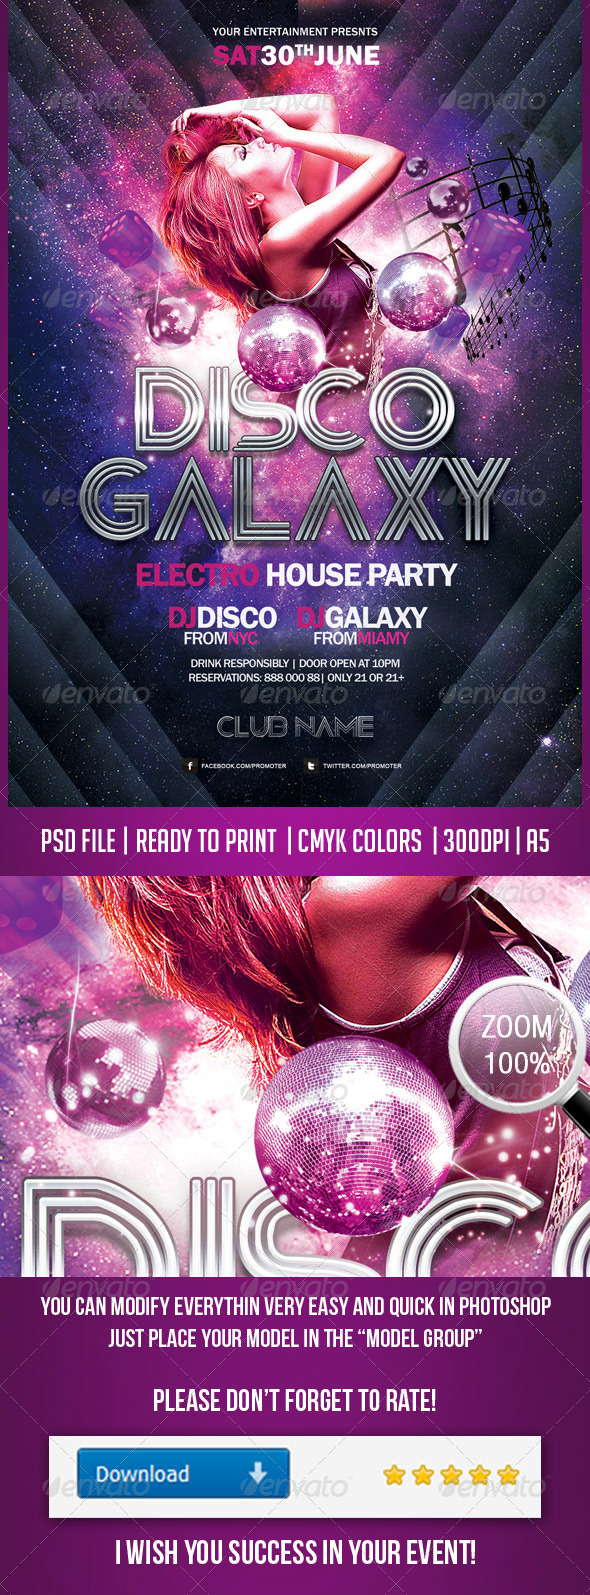 Disco Galaxy Electro Party Flayer - Clubs & Parties Events